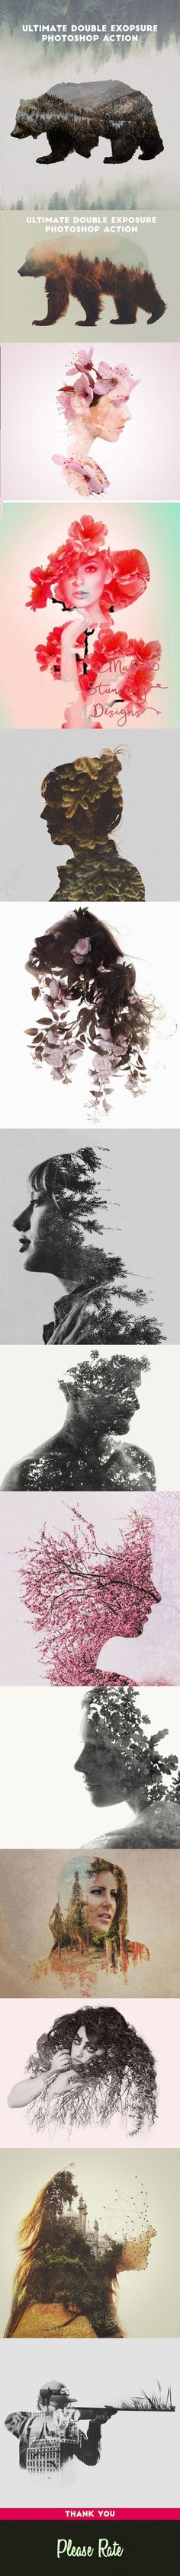 Ultimate Double Exposure Photoshop Action - Photo Effects Actions. Photoshop tips.